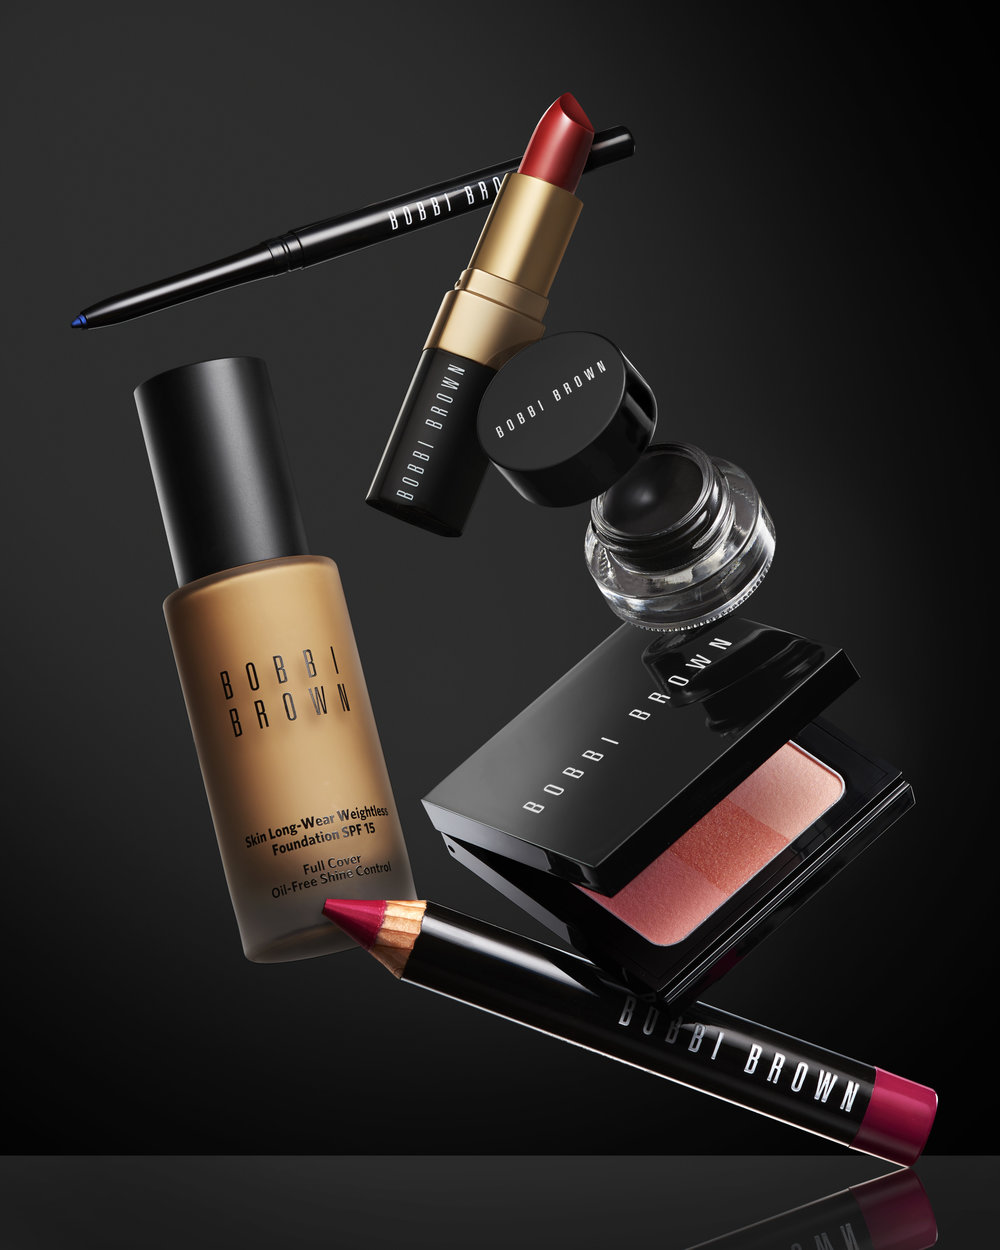 180113_Bobbi Brown Floating Stack_E.jpg